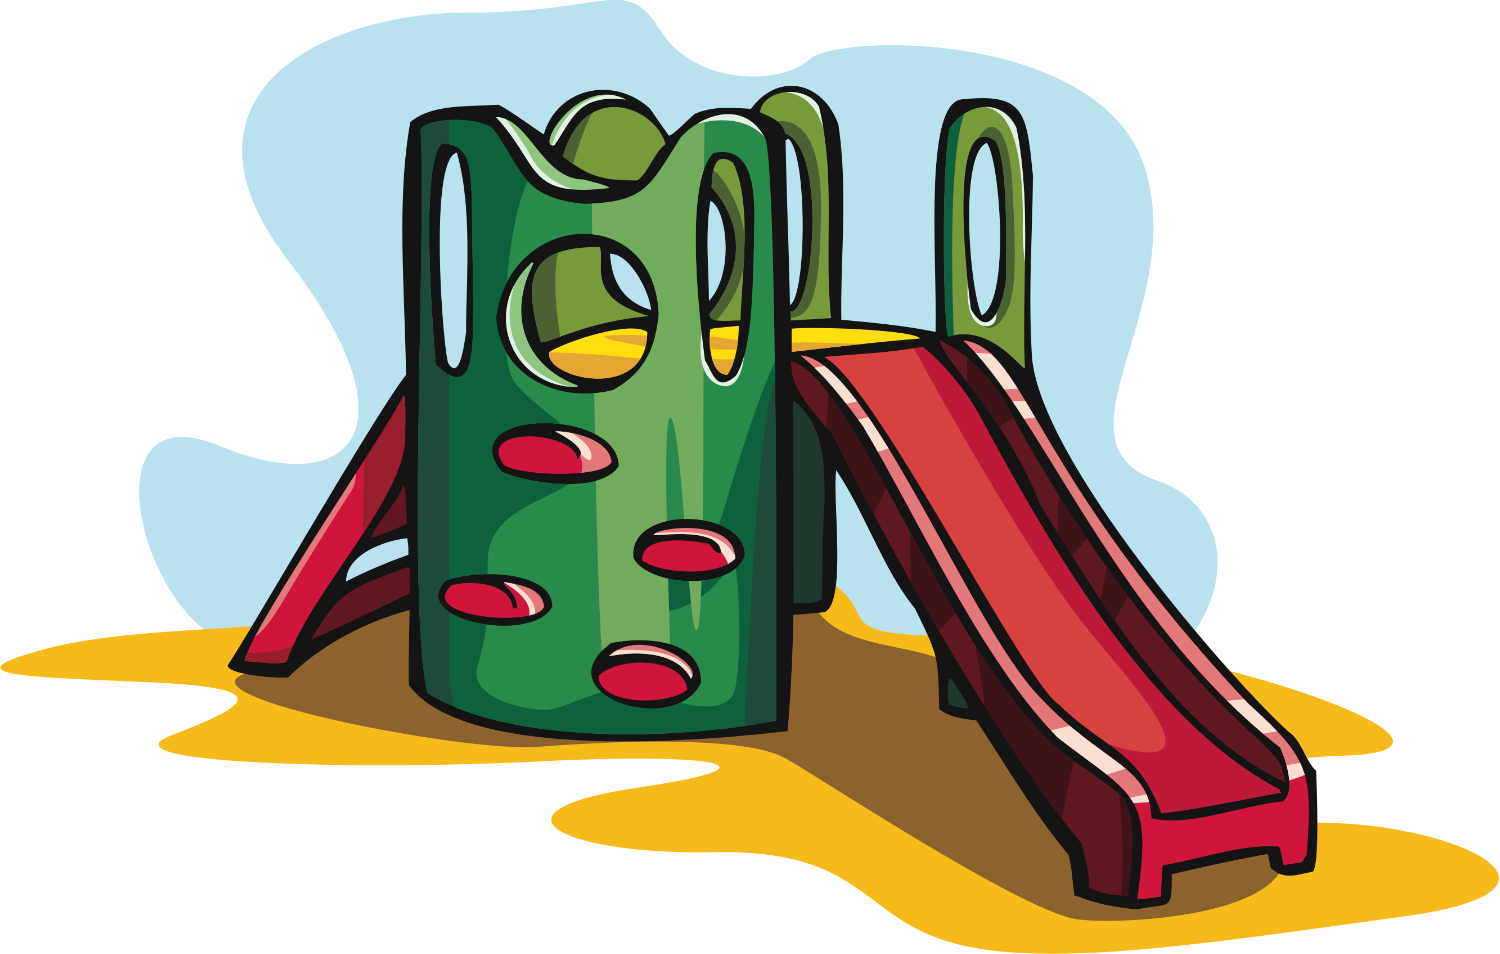 Cartoon clipart playground Com clipart clipart Playground clipart